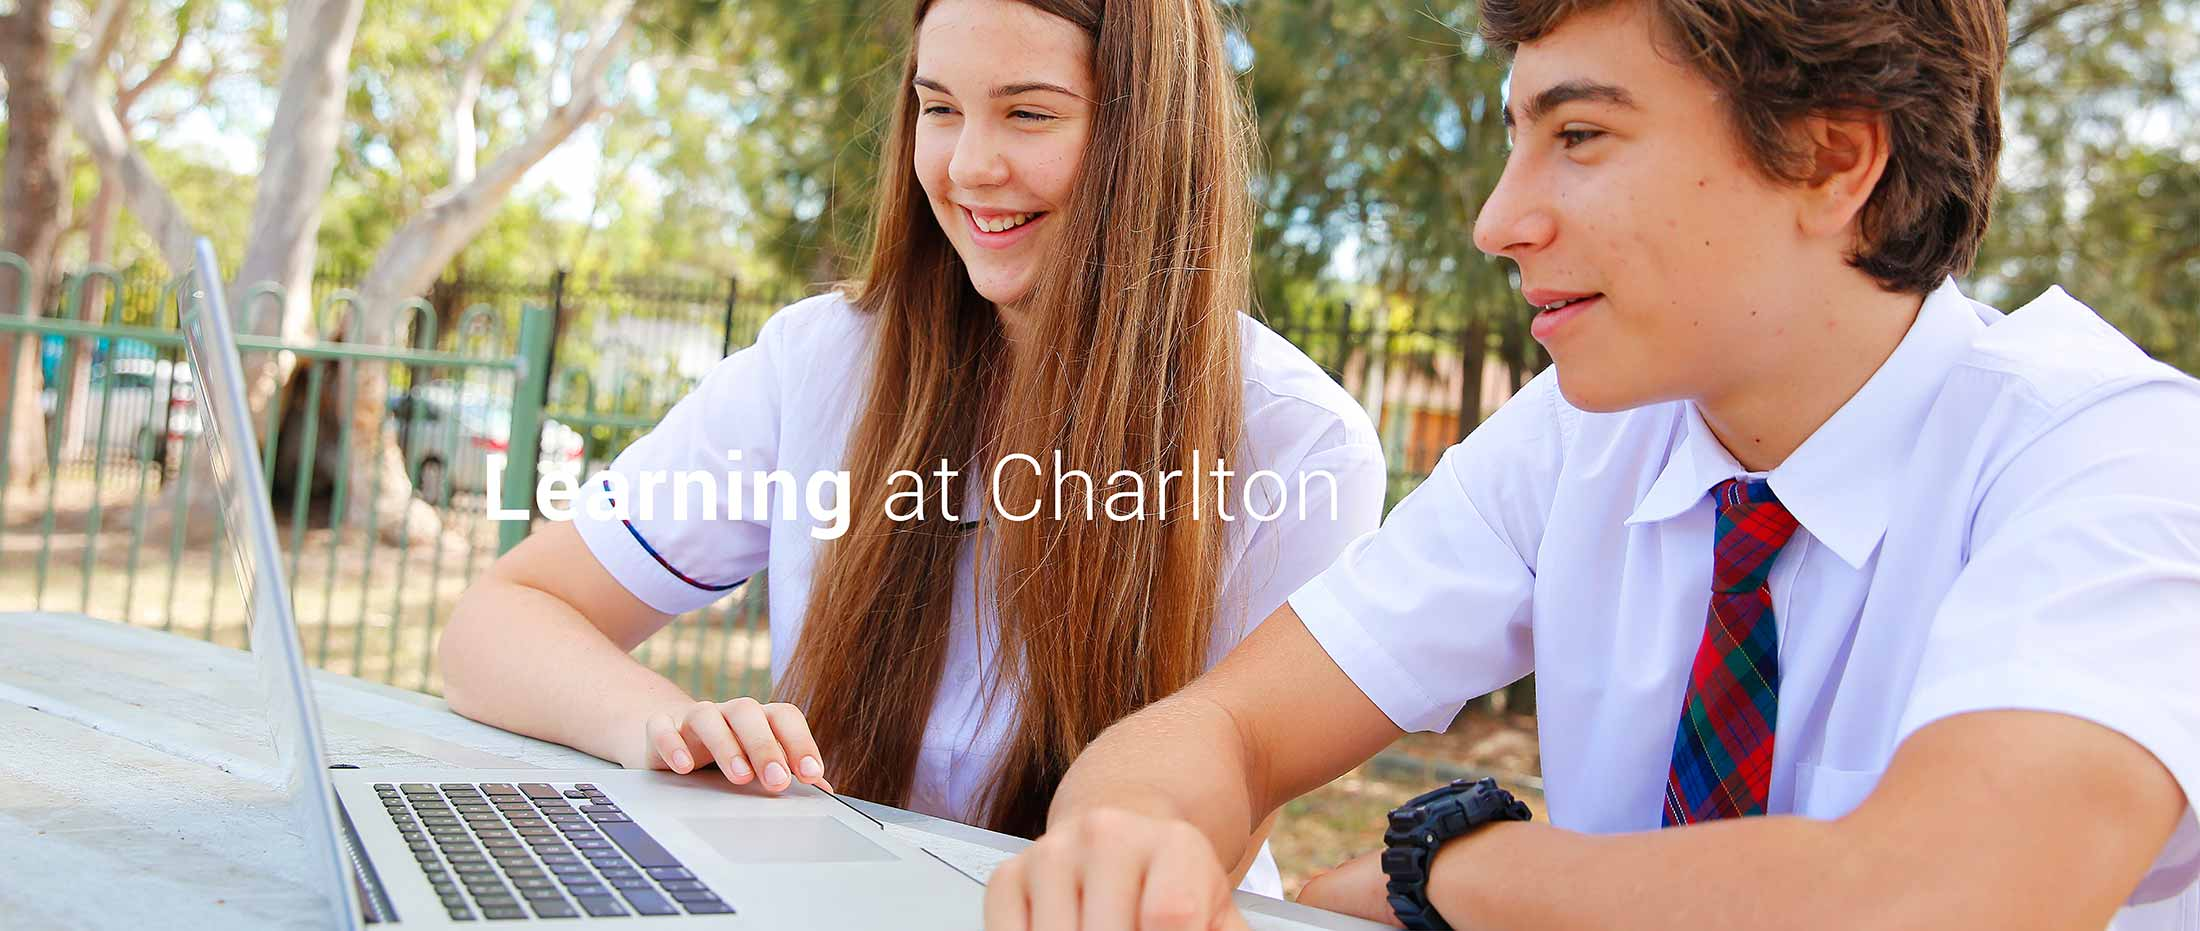 learning at charlton christian college